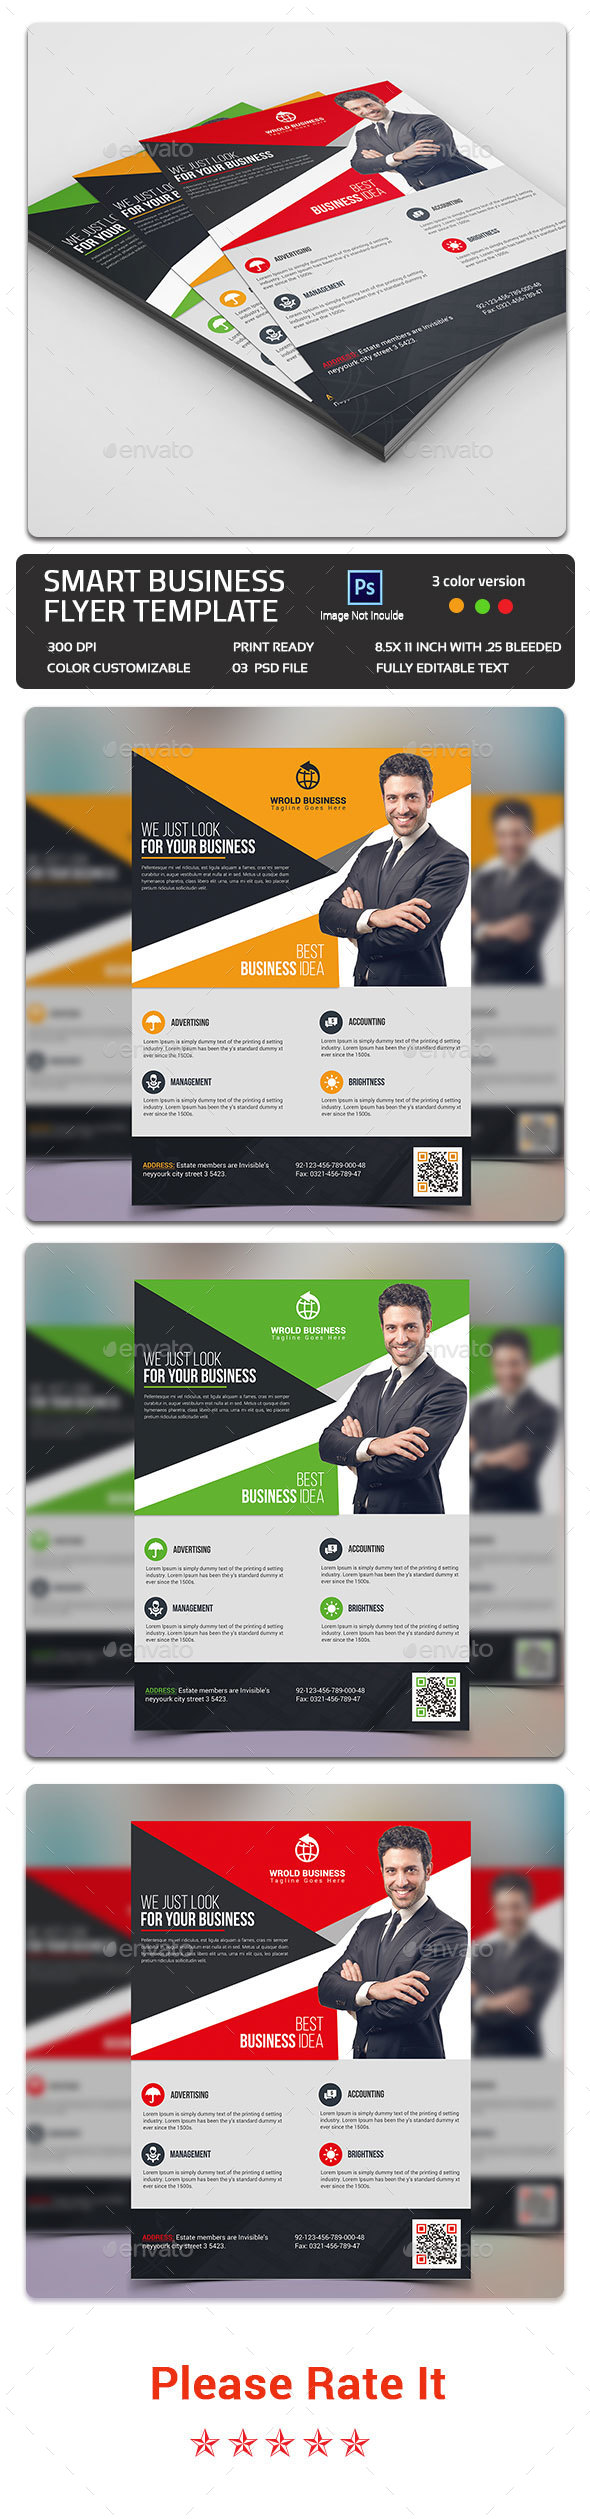 Smart Business Flyer Template - Flyers Print Templates